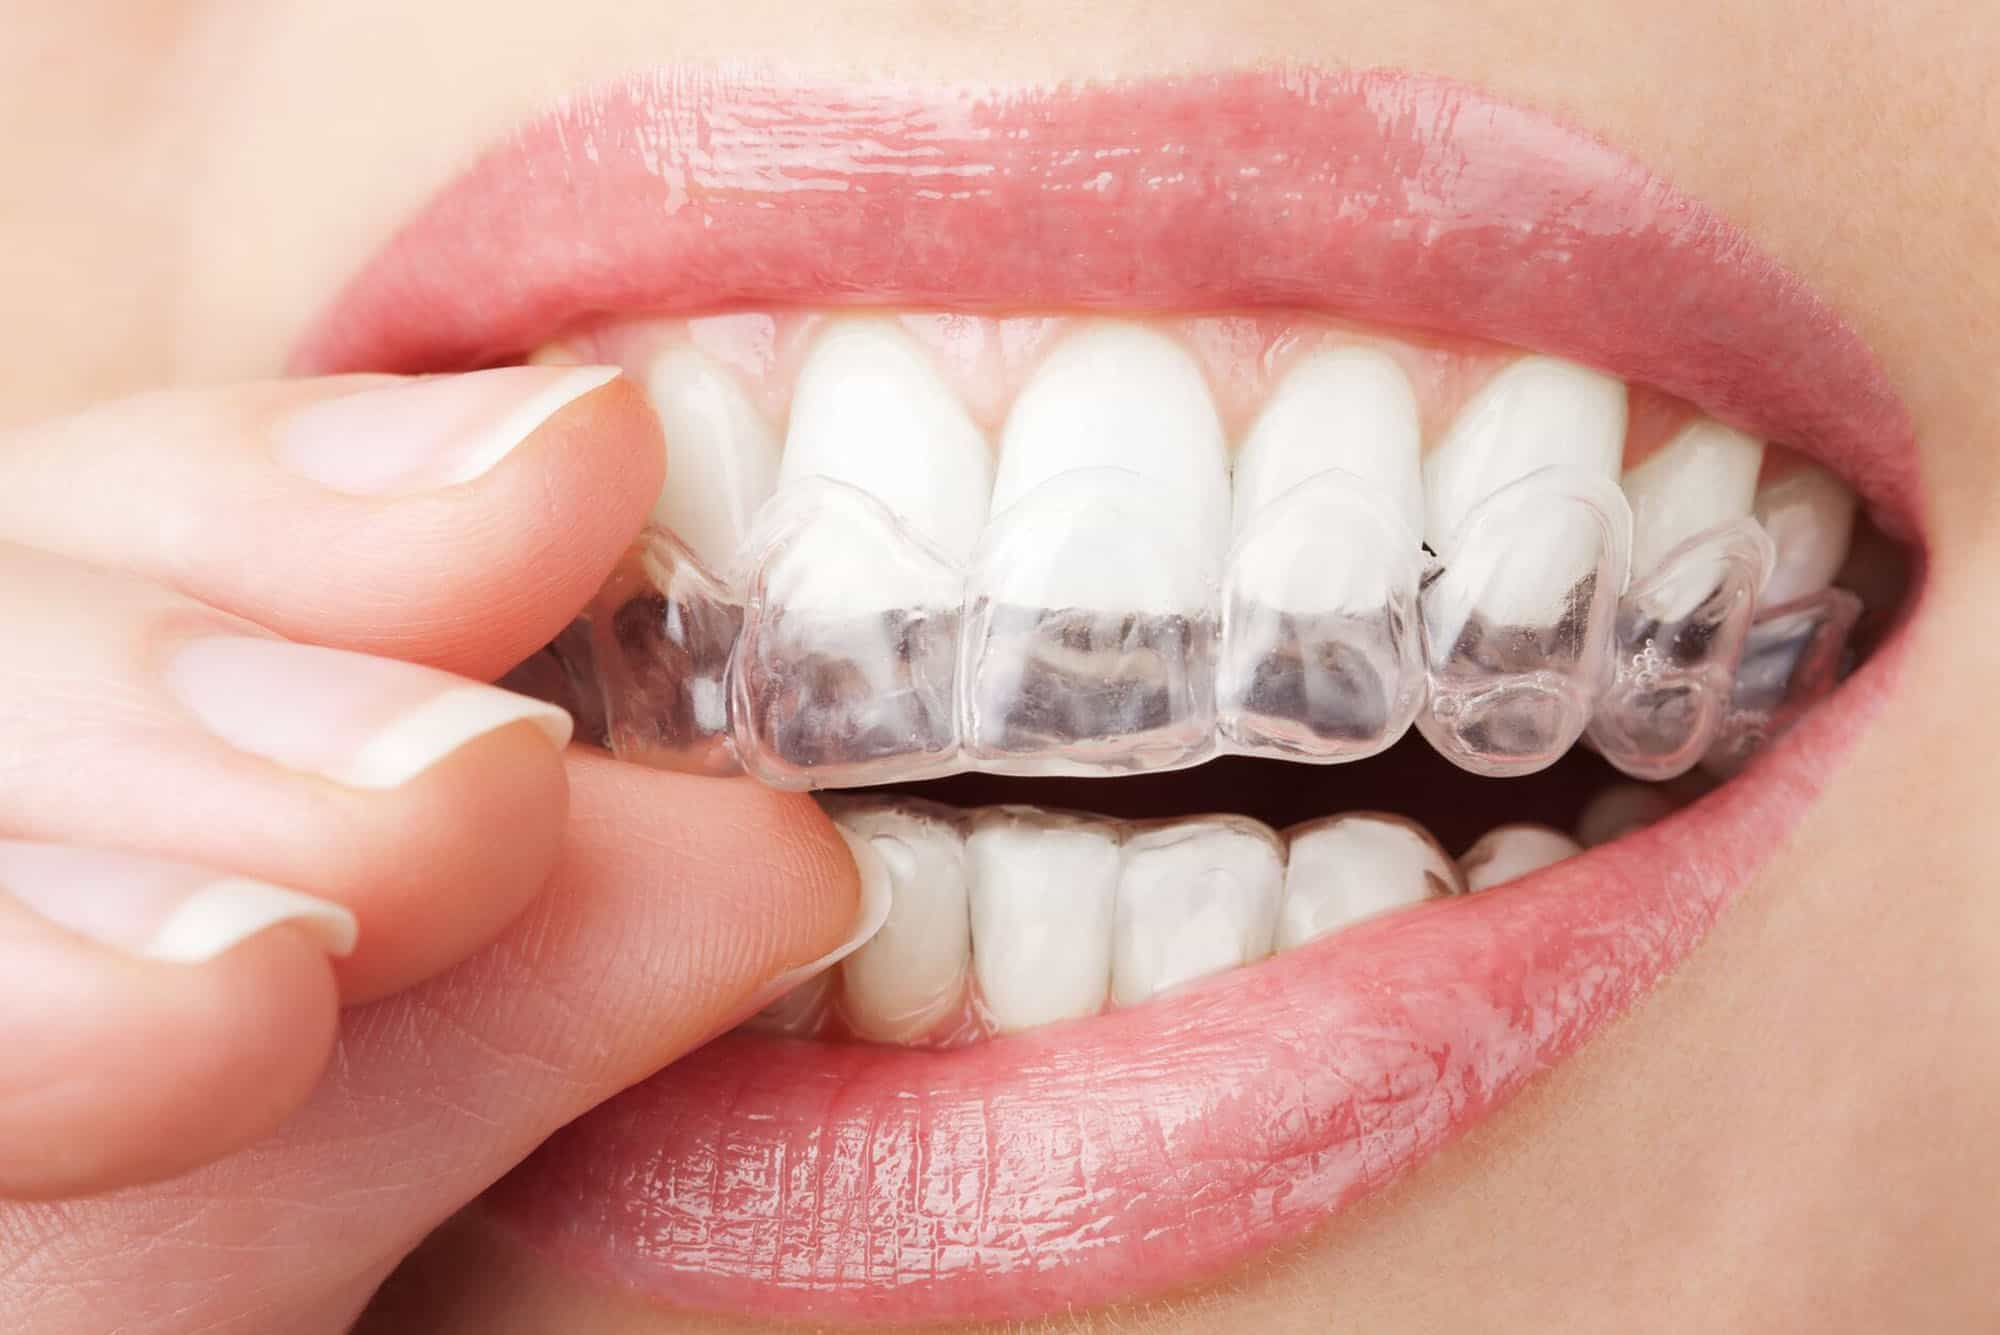 Clear-aligner ADOLESCENT TREATMENT